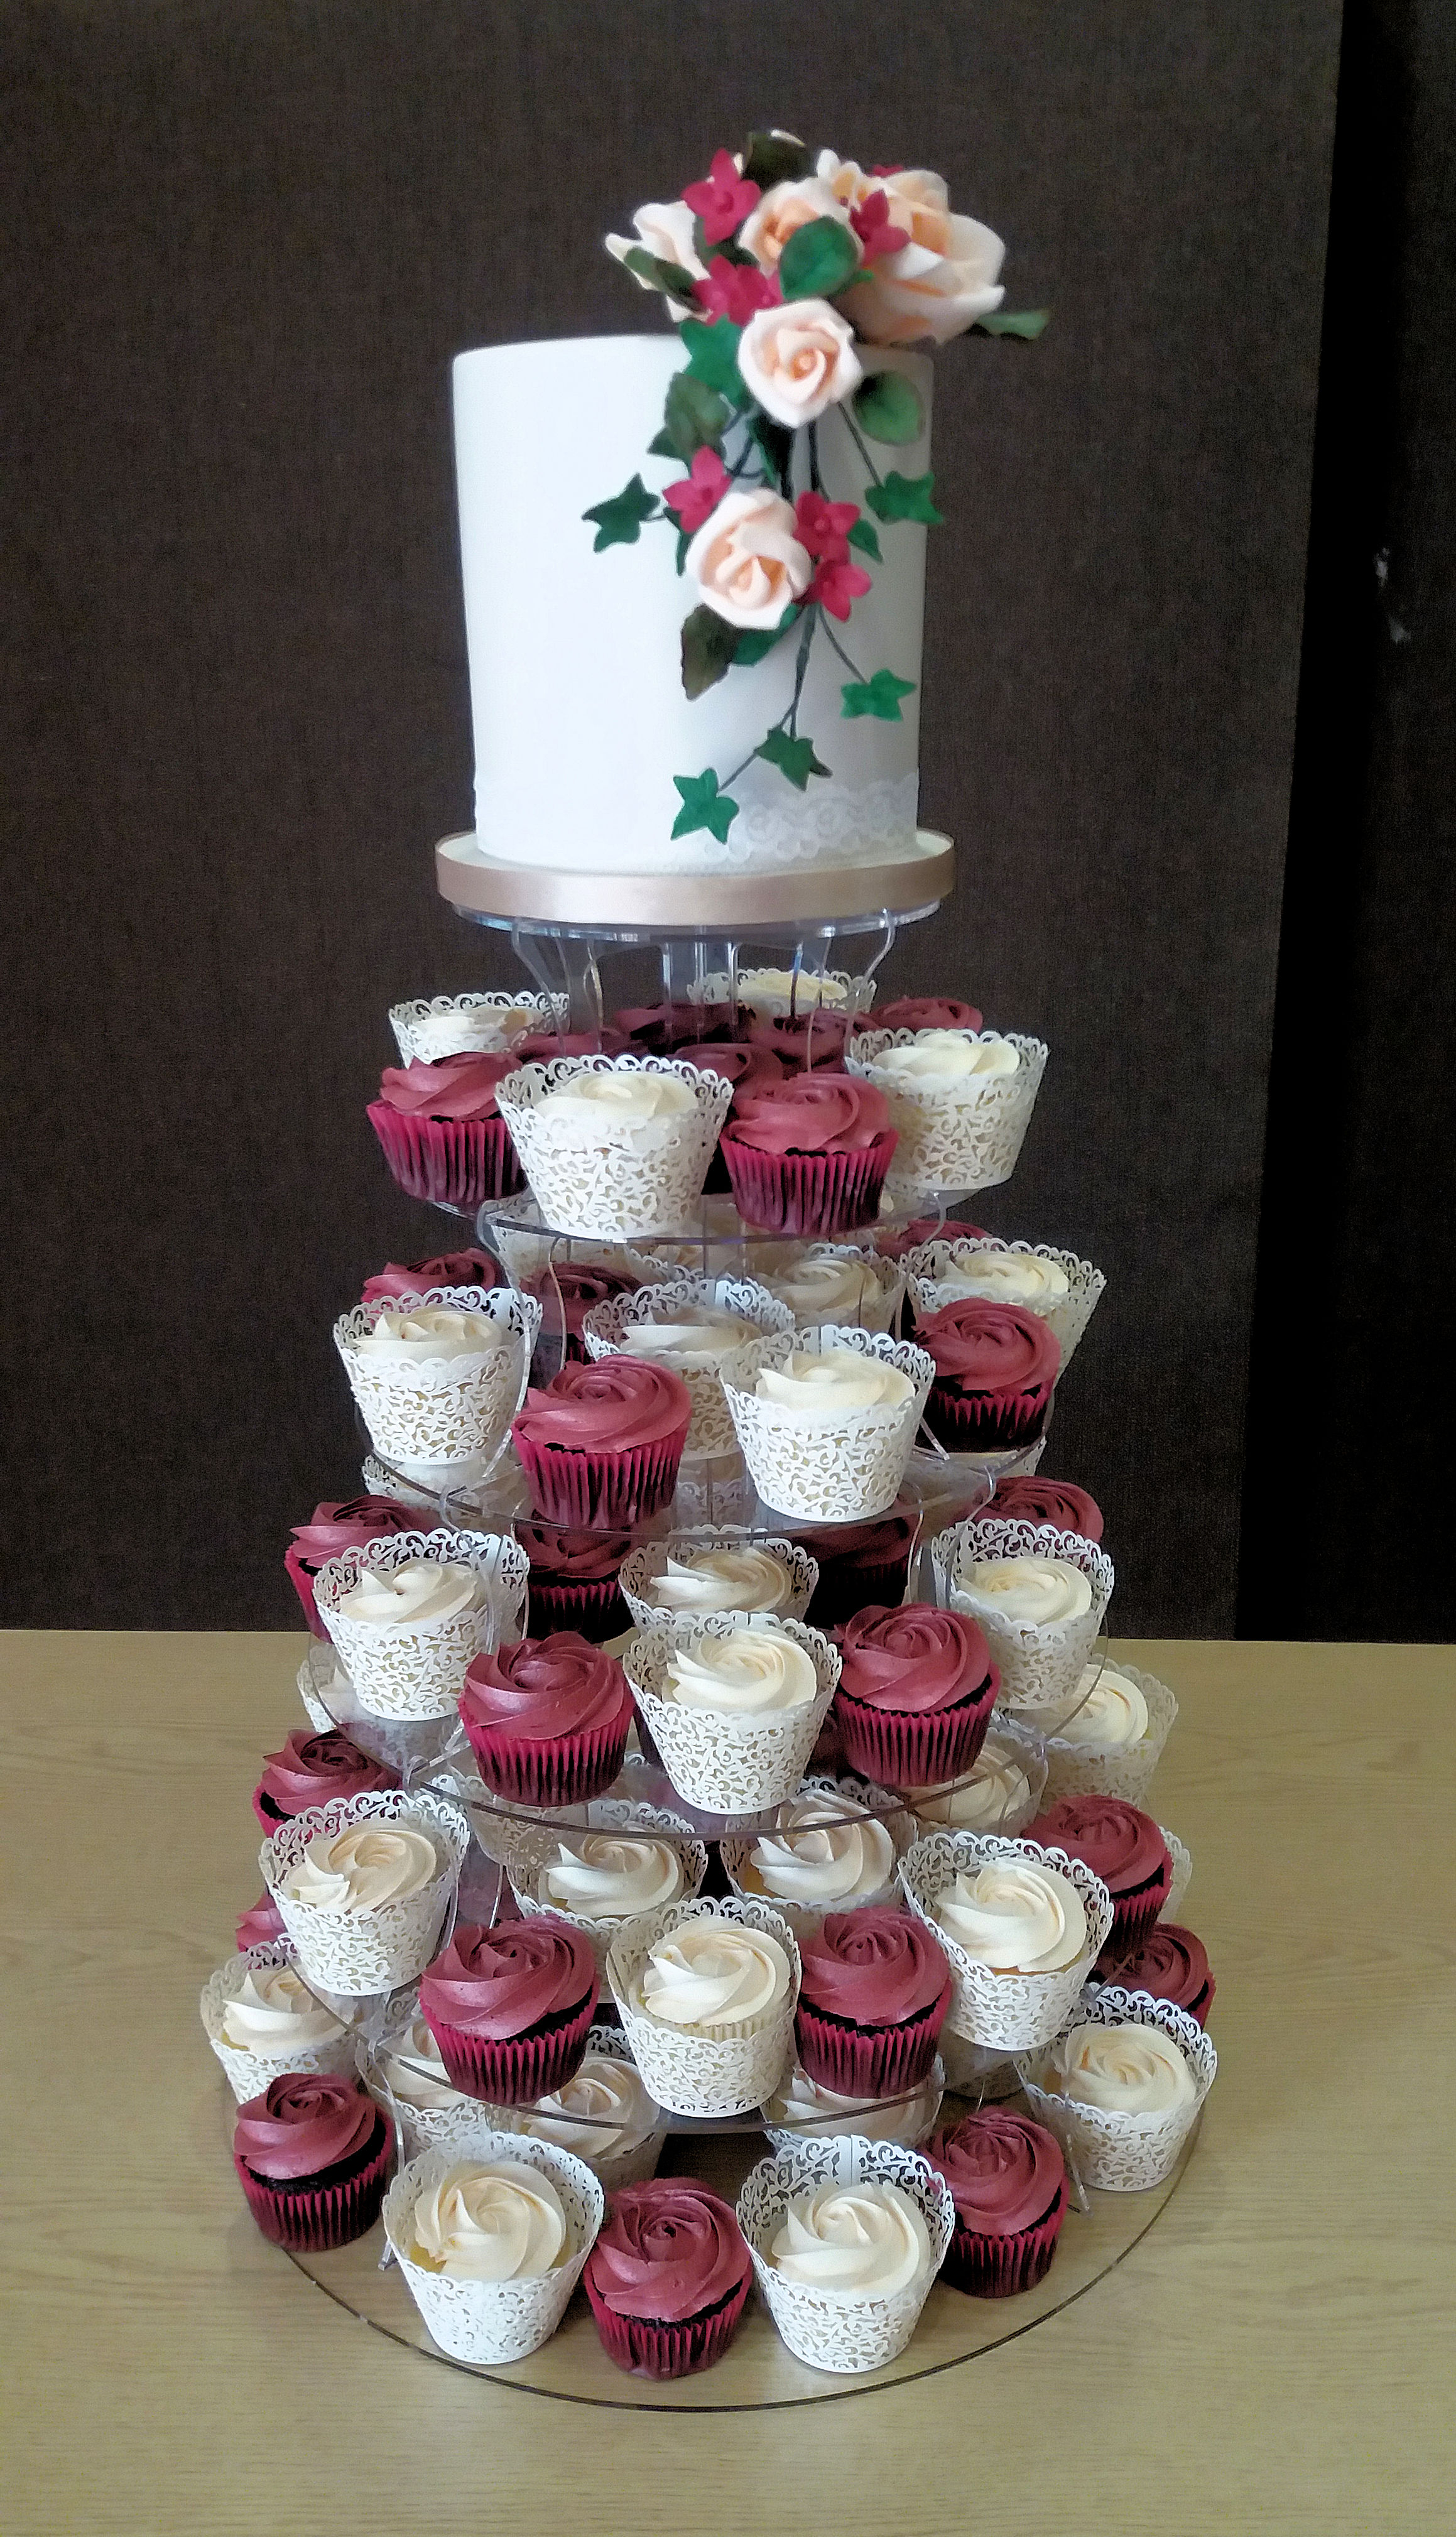 rose wedding cake and cupcake tower 1.jpg